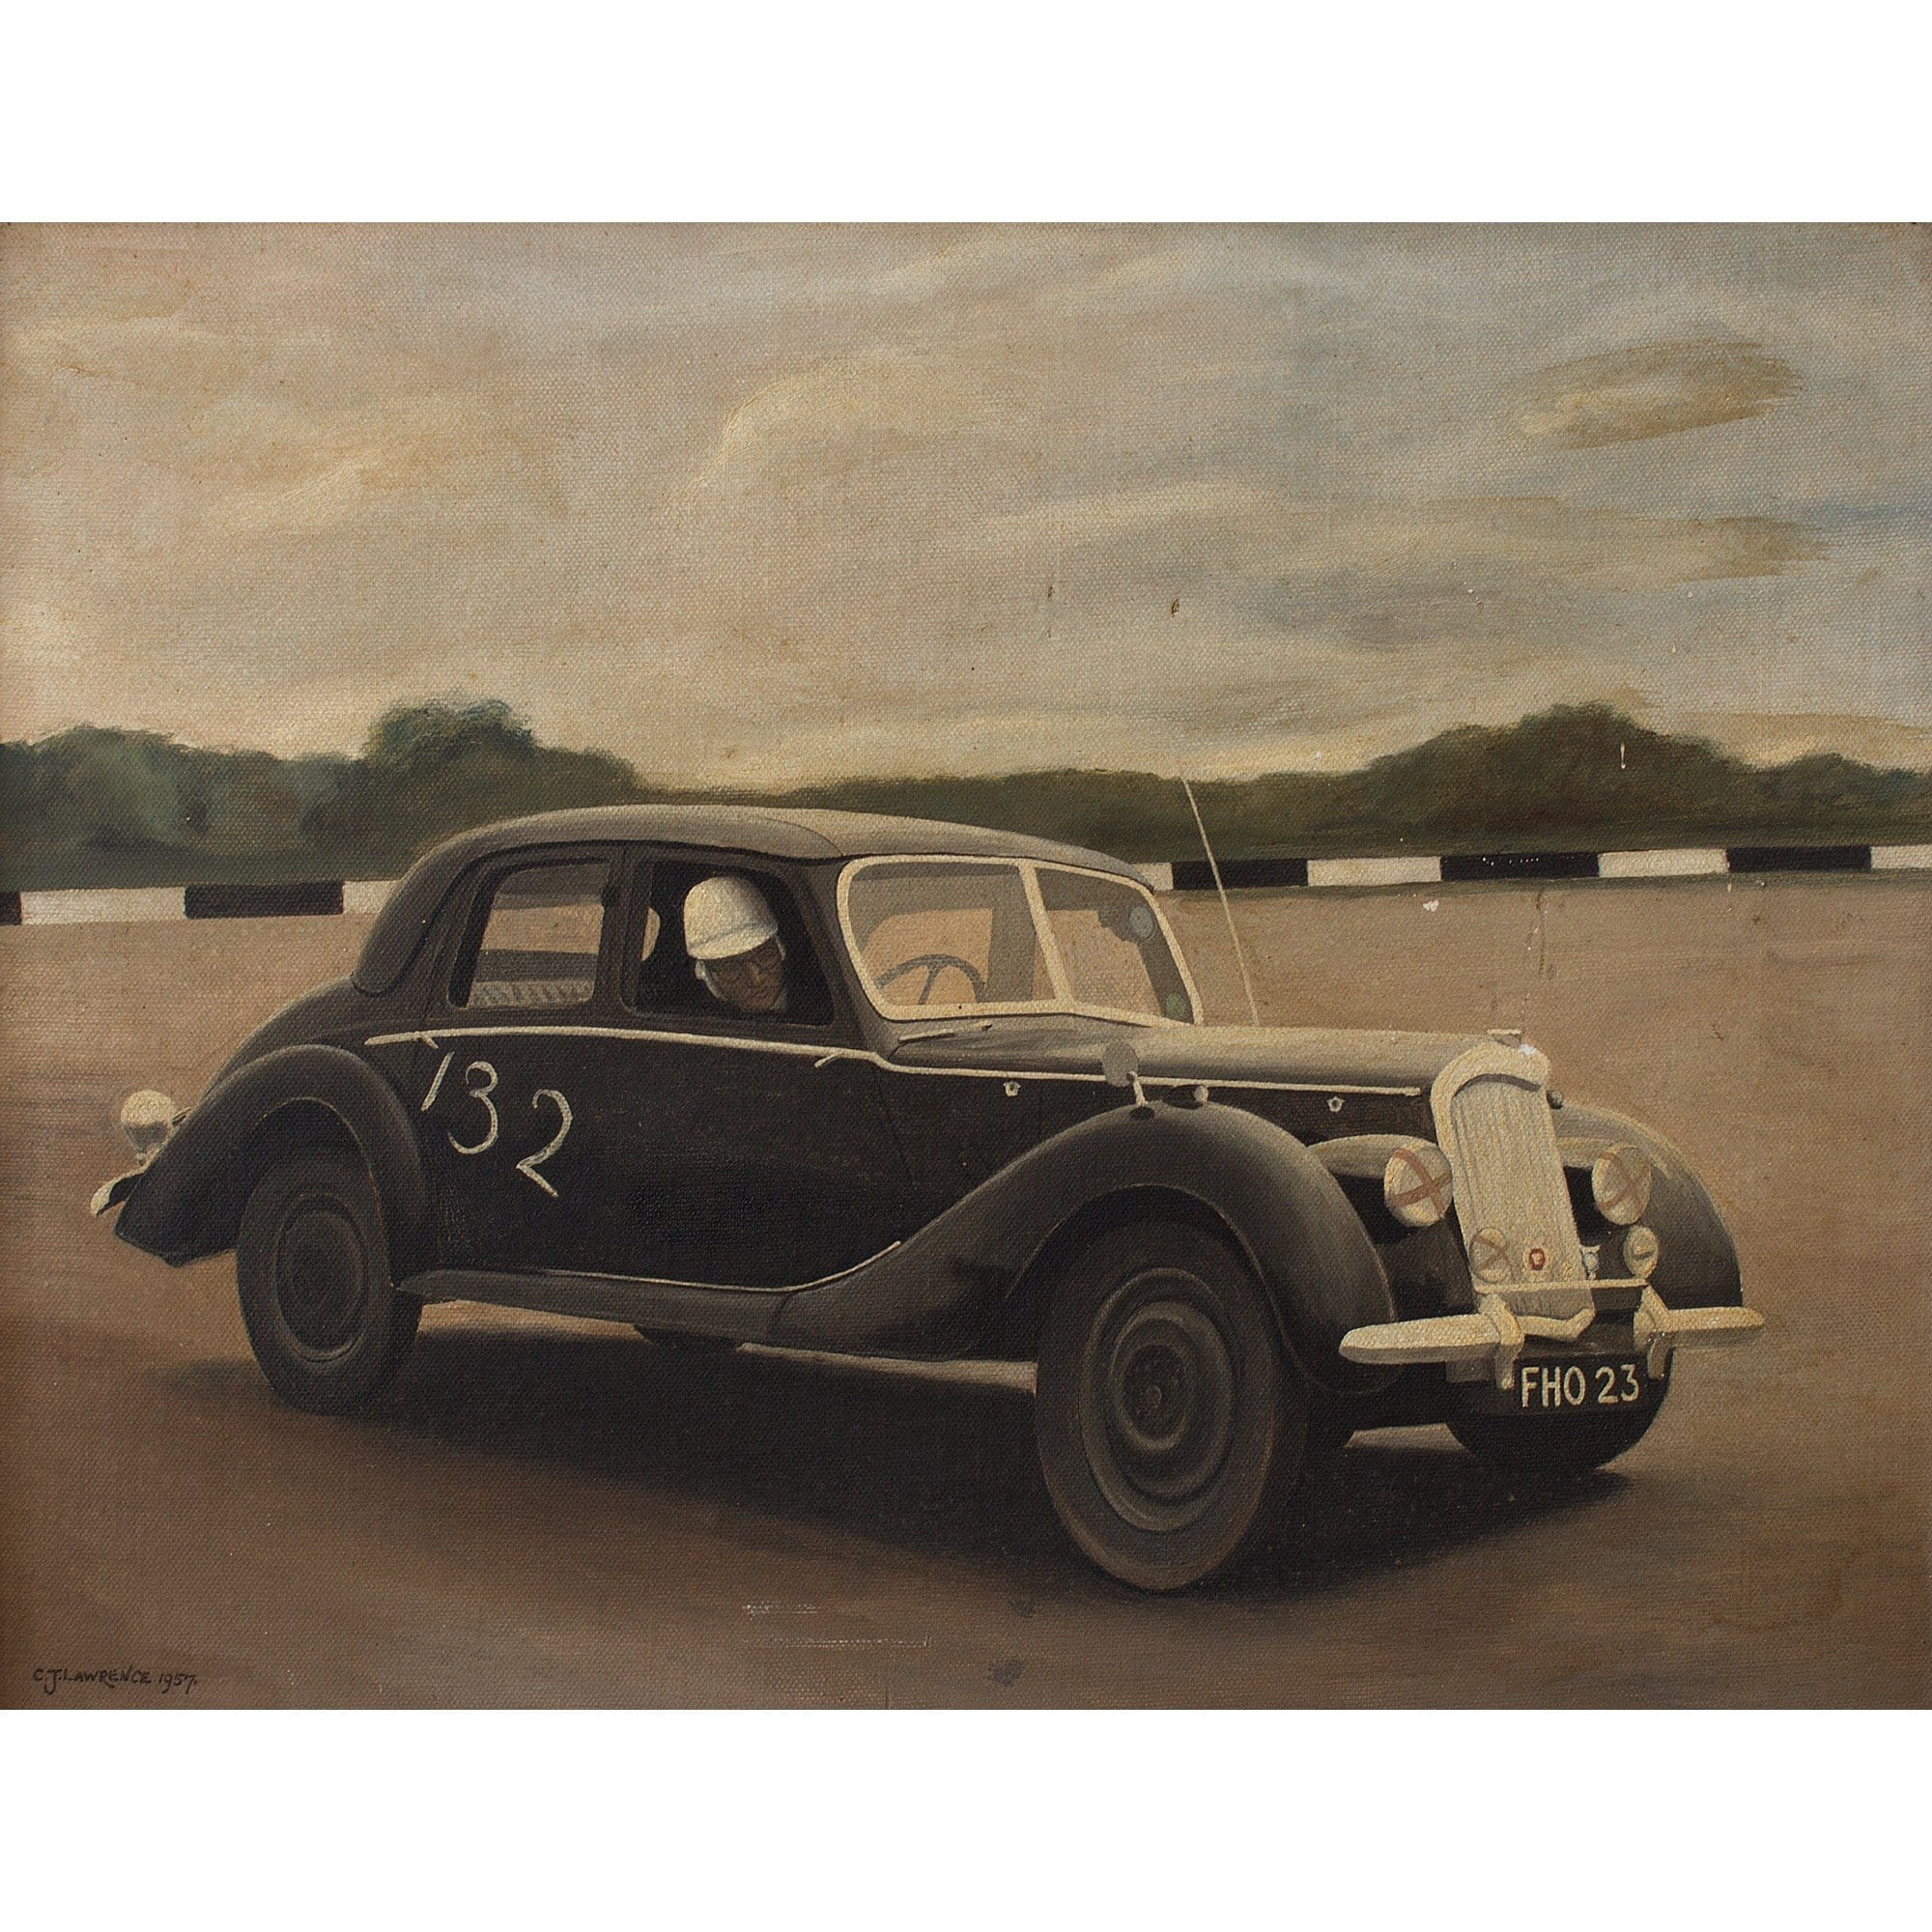 C J Lawrence, 1950s British Racing Car